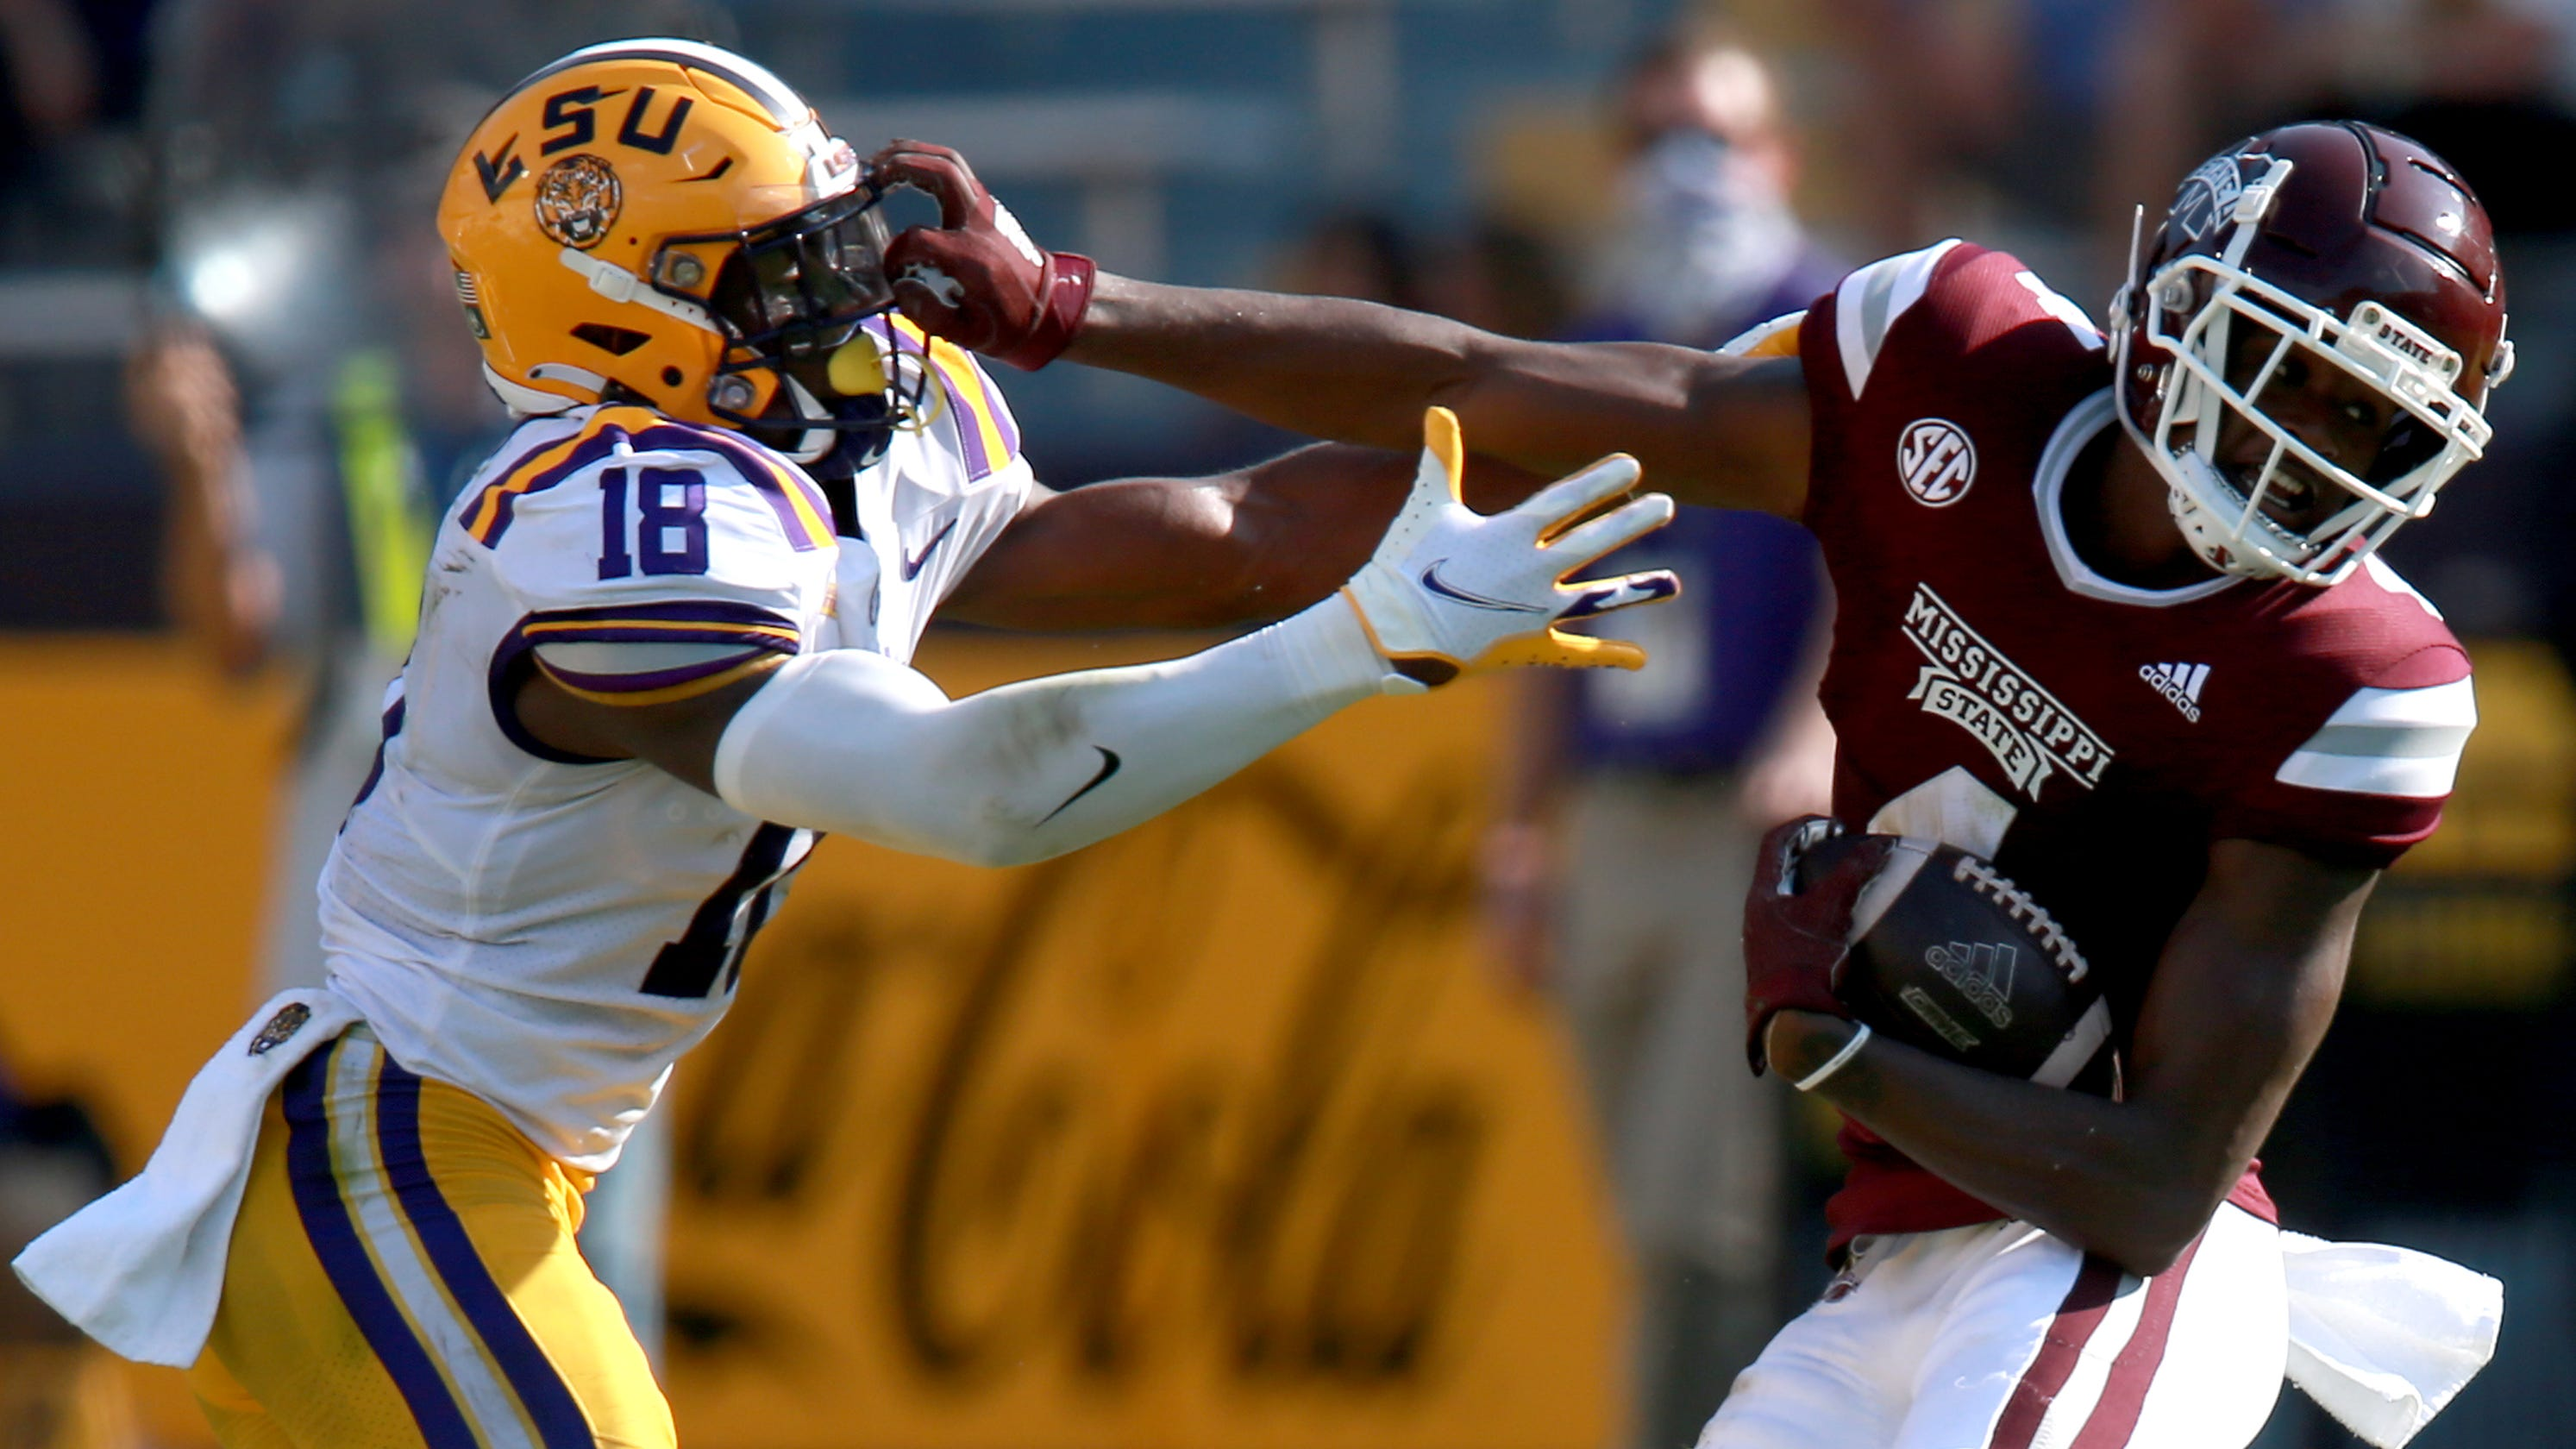 LSU falls to Mississippi State for first loss in nearly two years